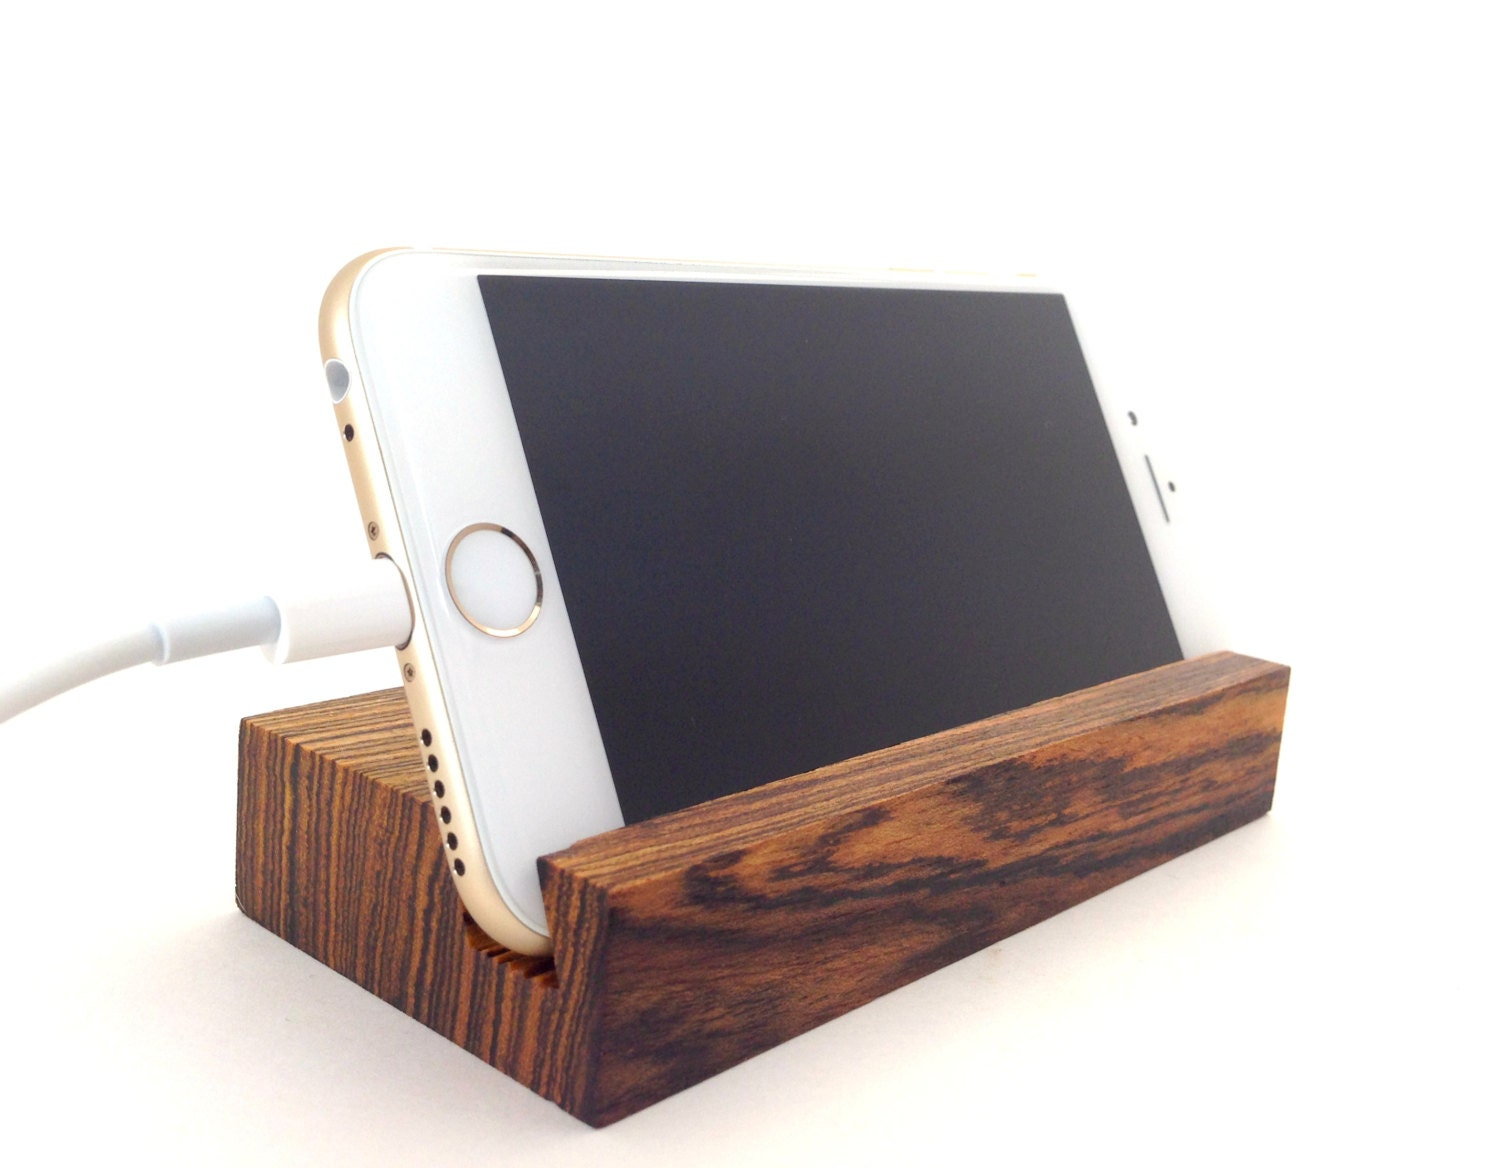 Iphone stand bocote wood